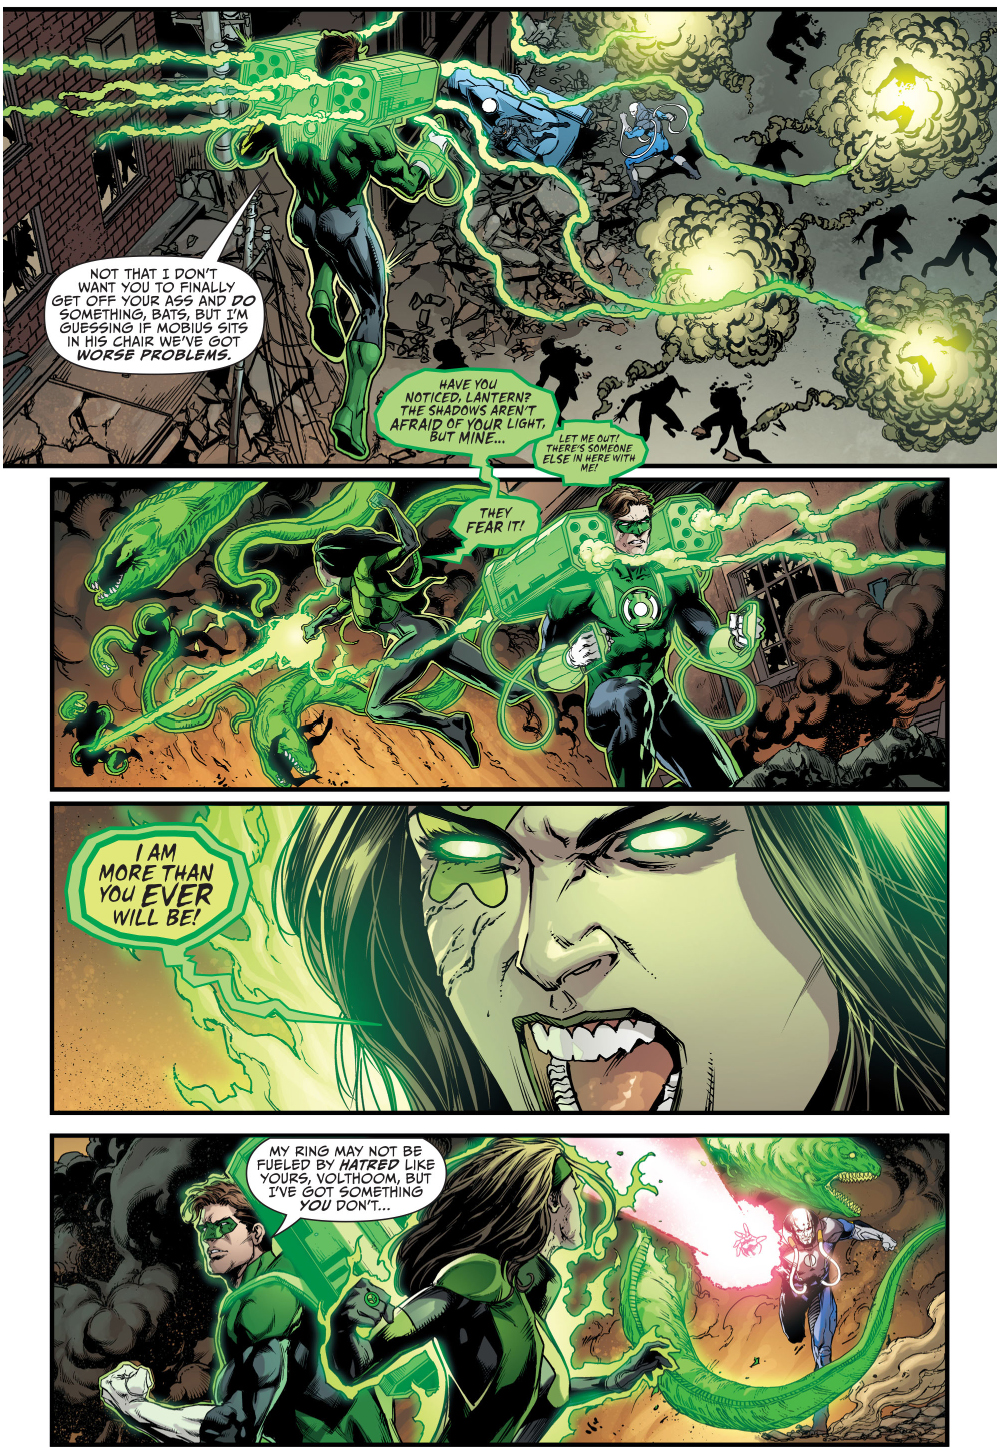 Green lantern ring comic - photo#21